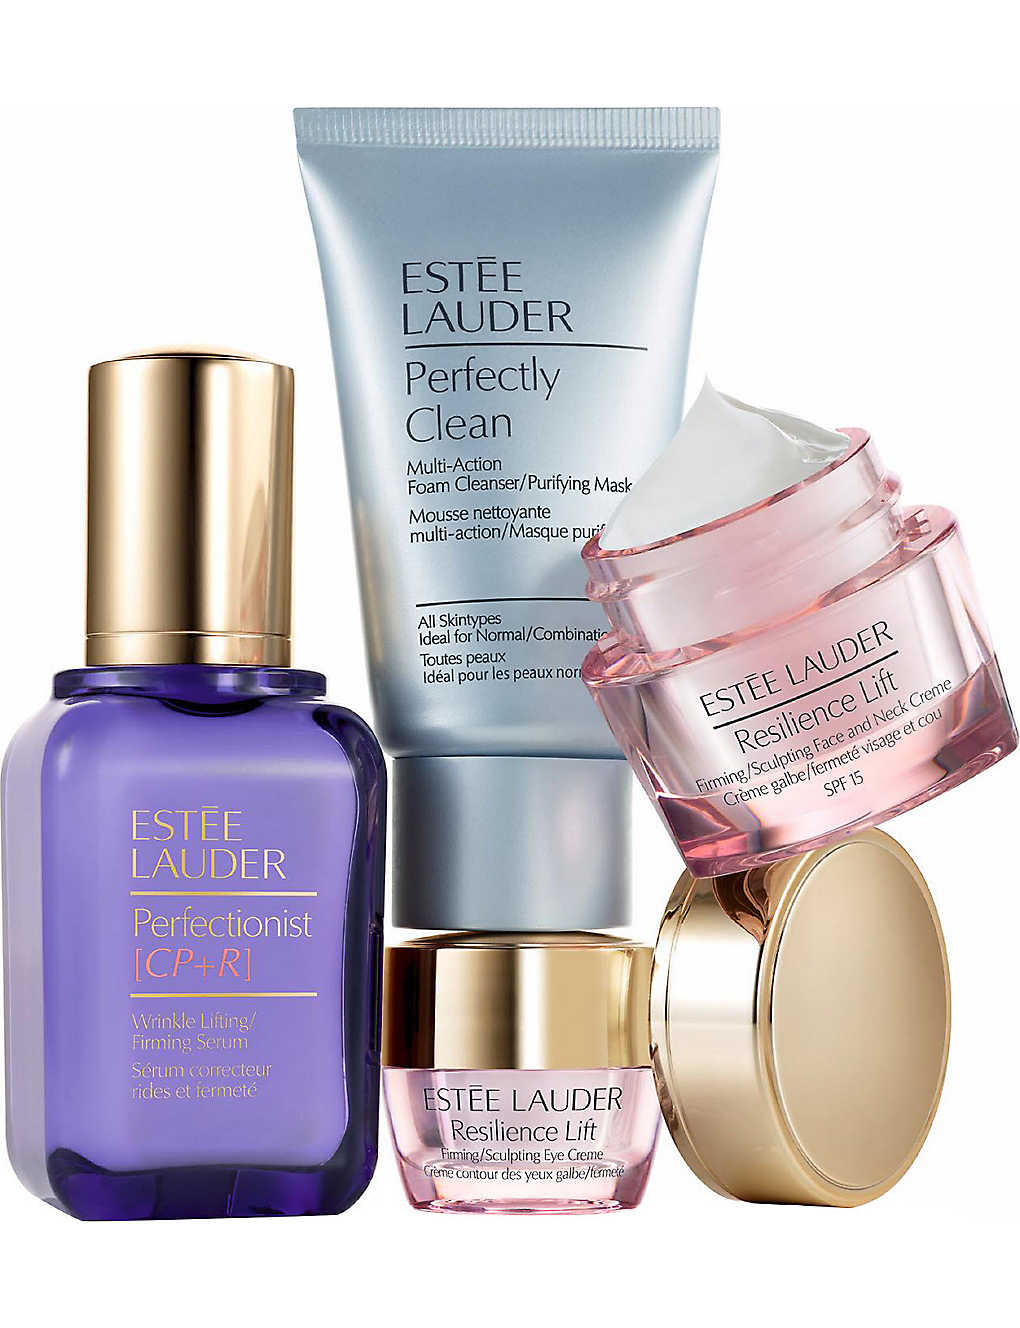 Estee Lauder Lifting Firming Gift Set Perfectionist Wrinkle No Recent Searches